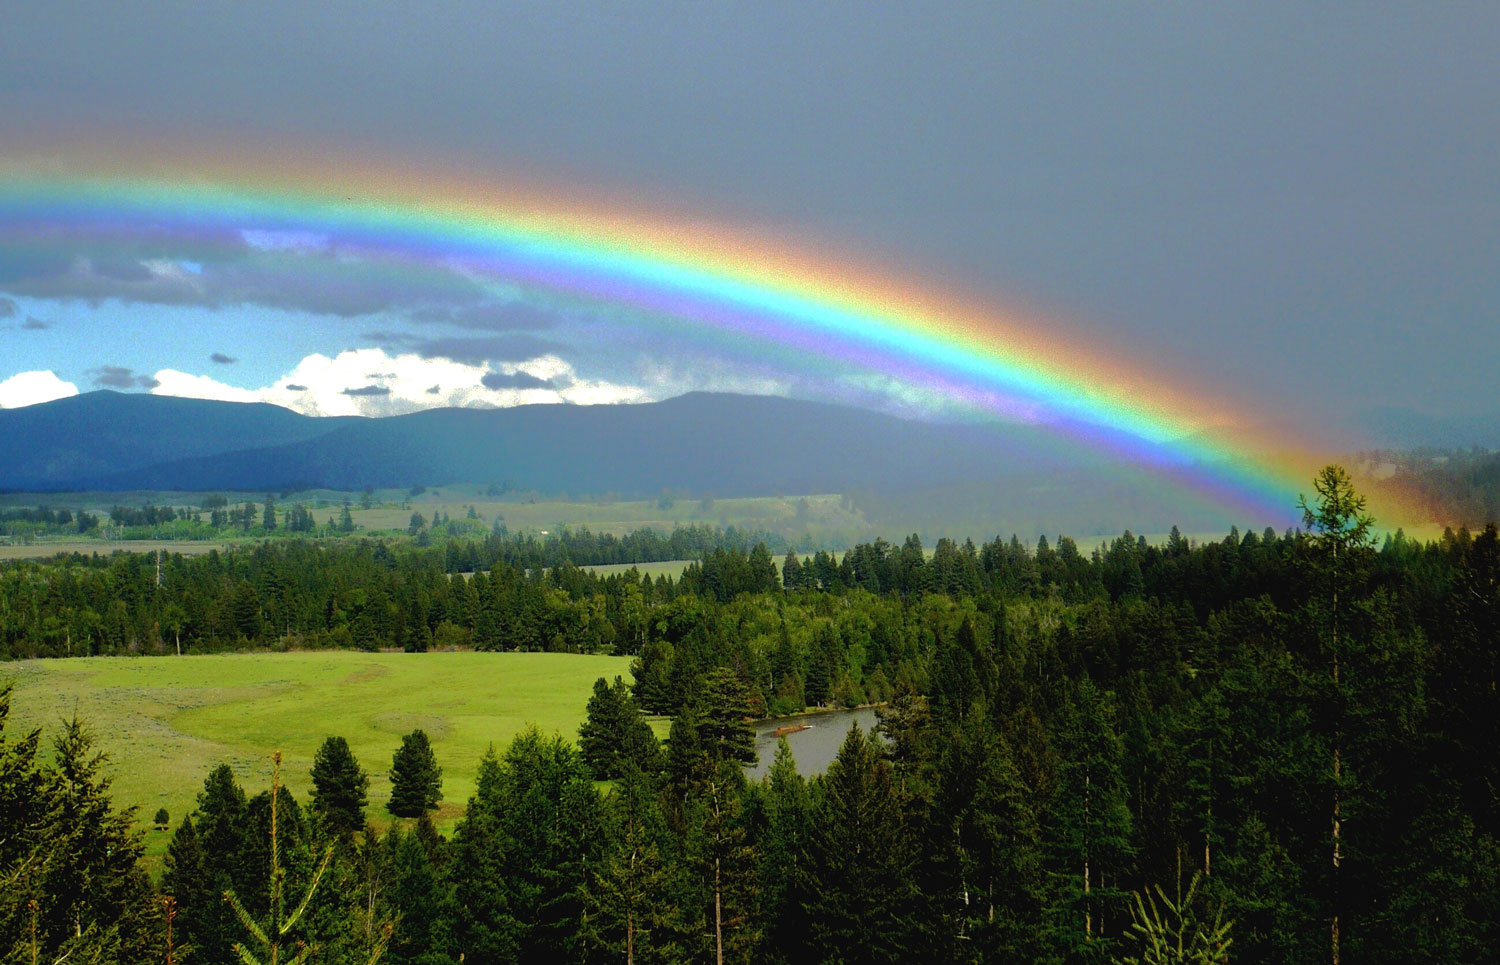 Scenic-June-rainbow-over-The-Blackfoot.jpg